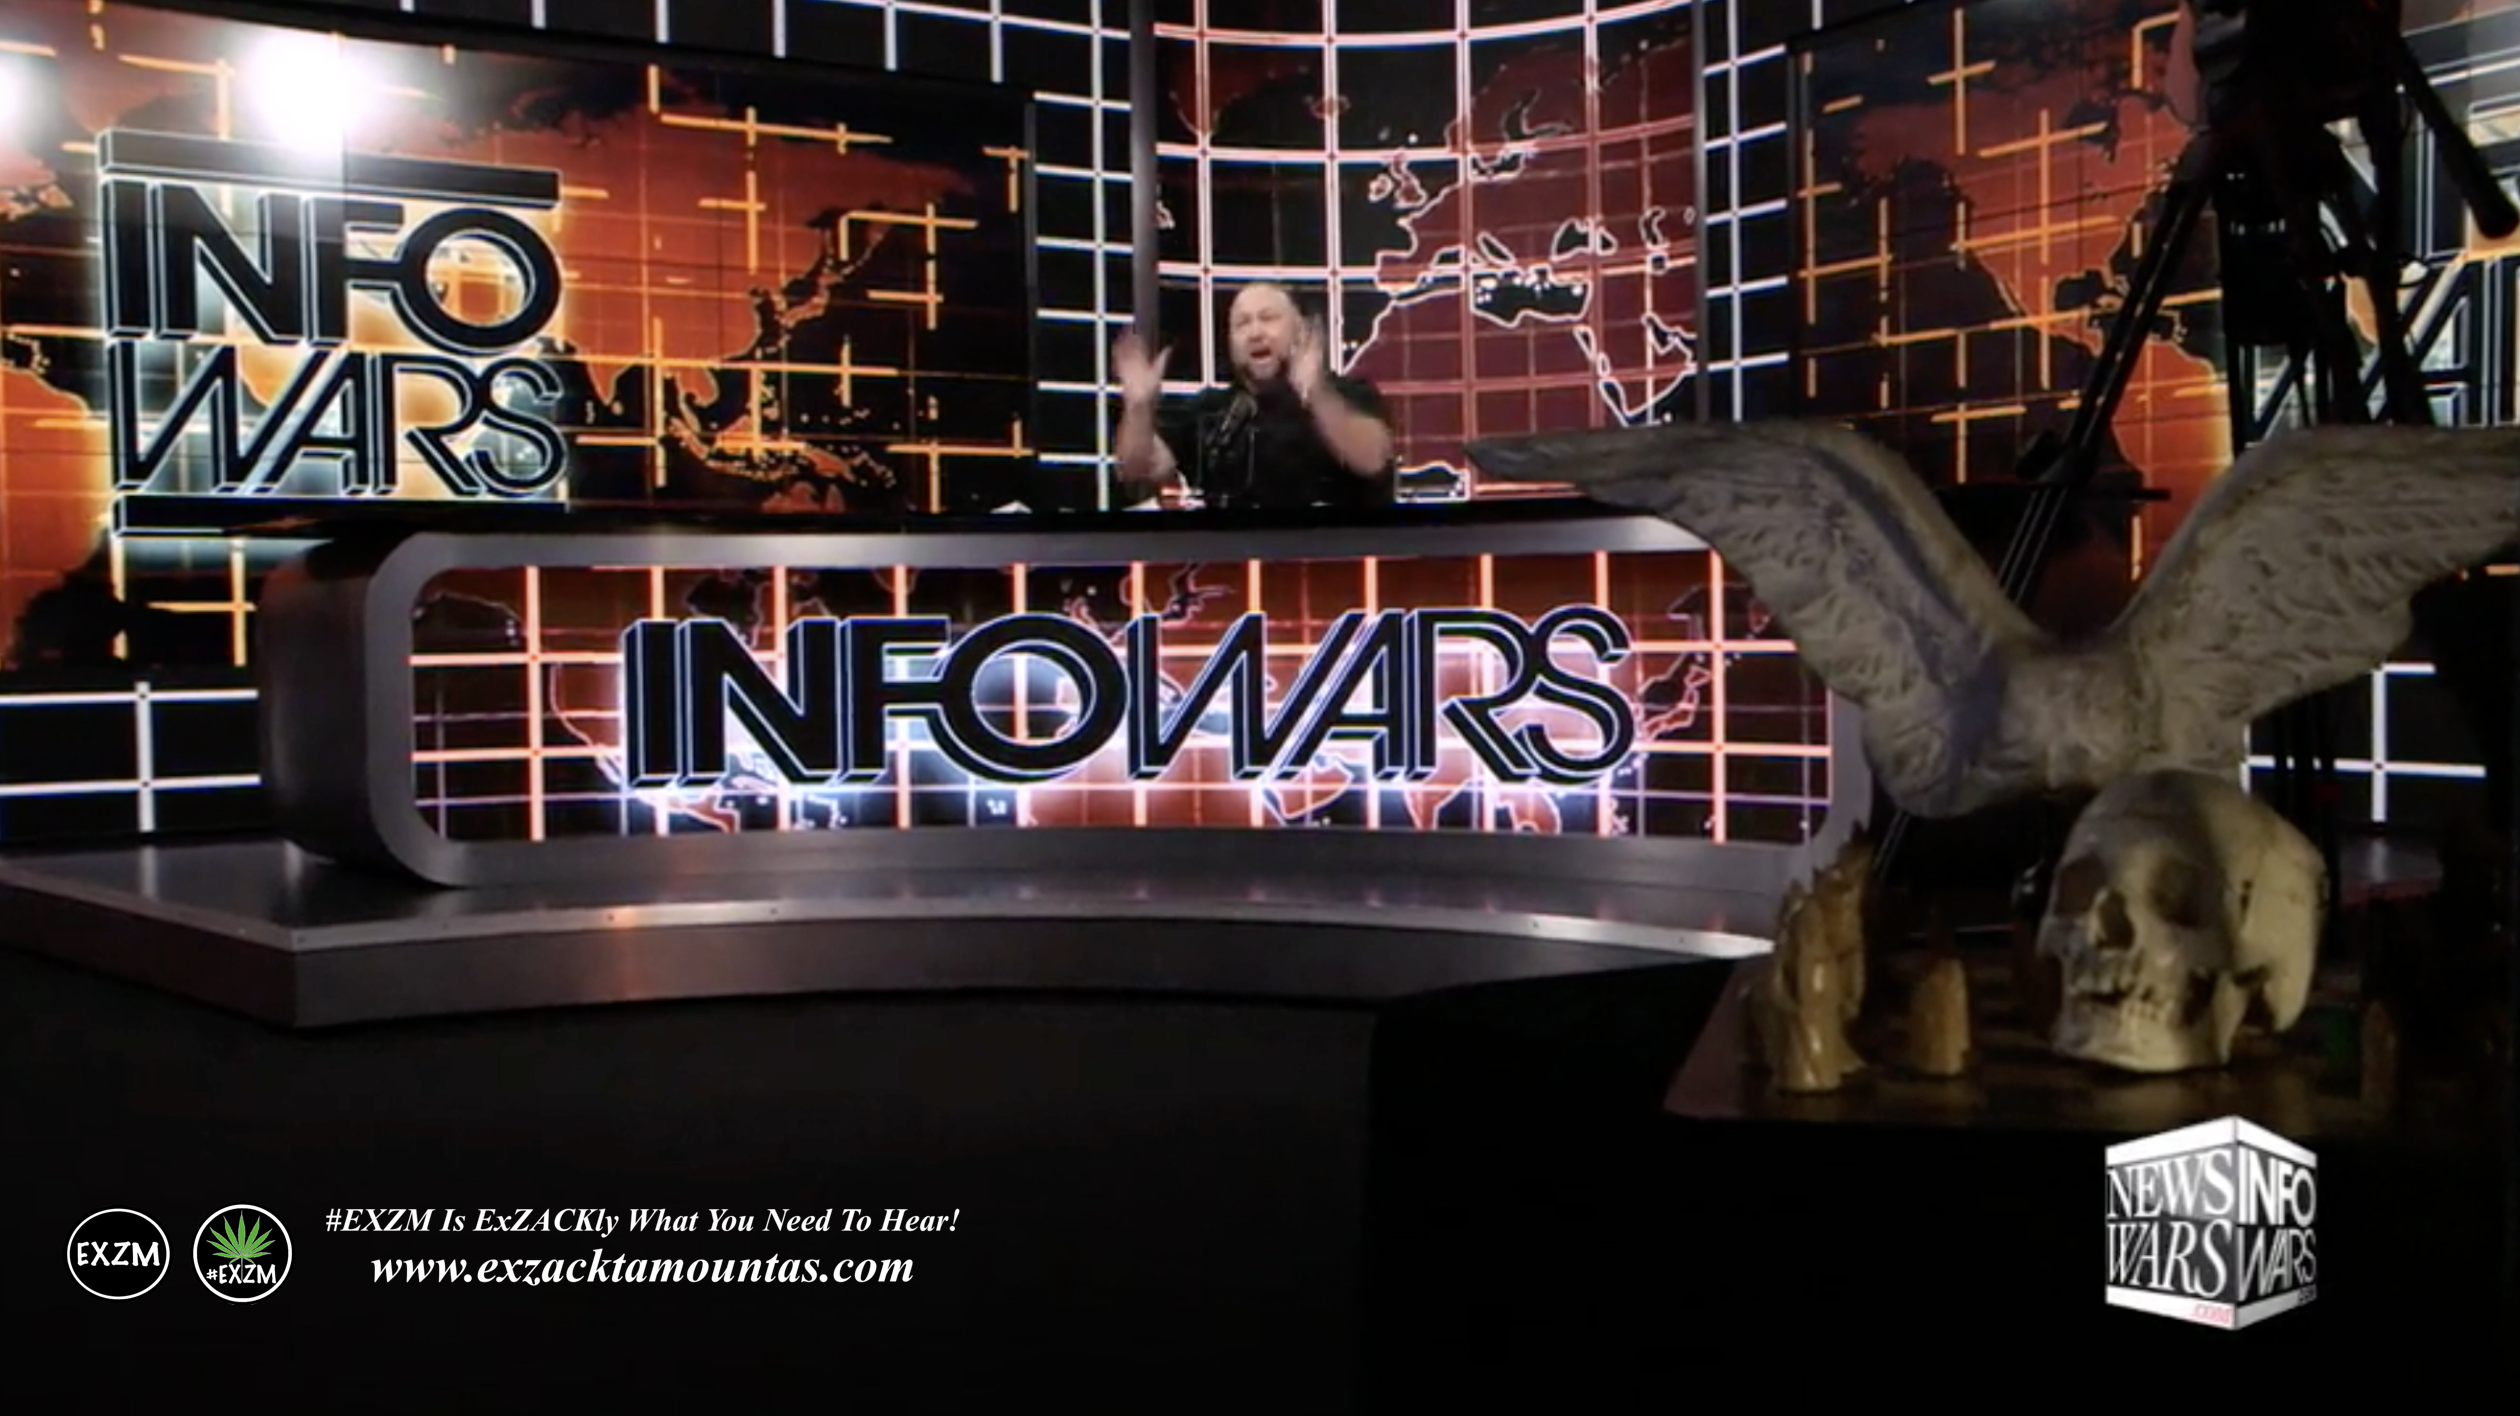 Alex Jones Infowars Studio Skull Angel Wings Sword EXZM Zack Mount January 31st 2021 copy